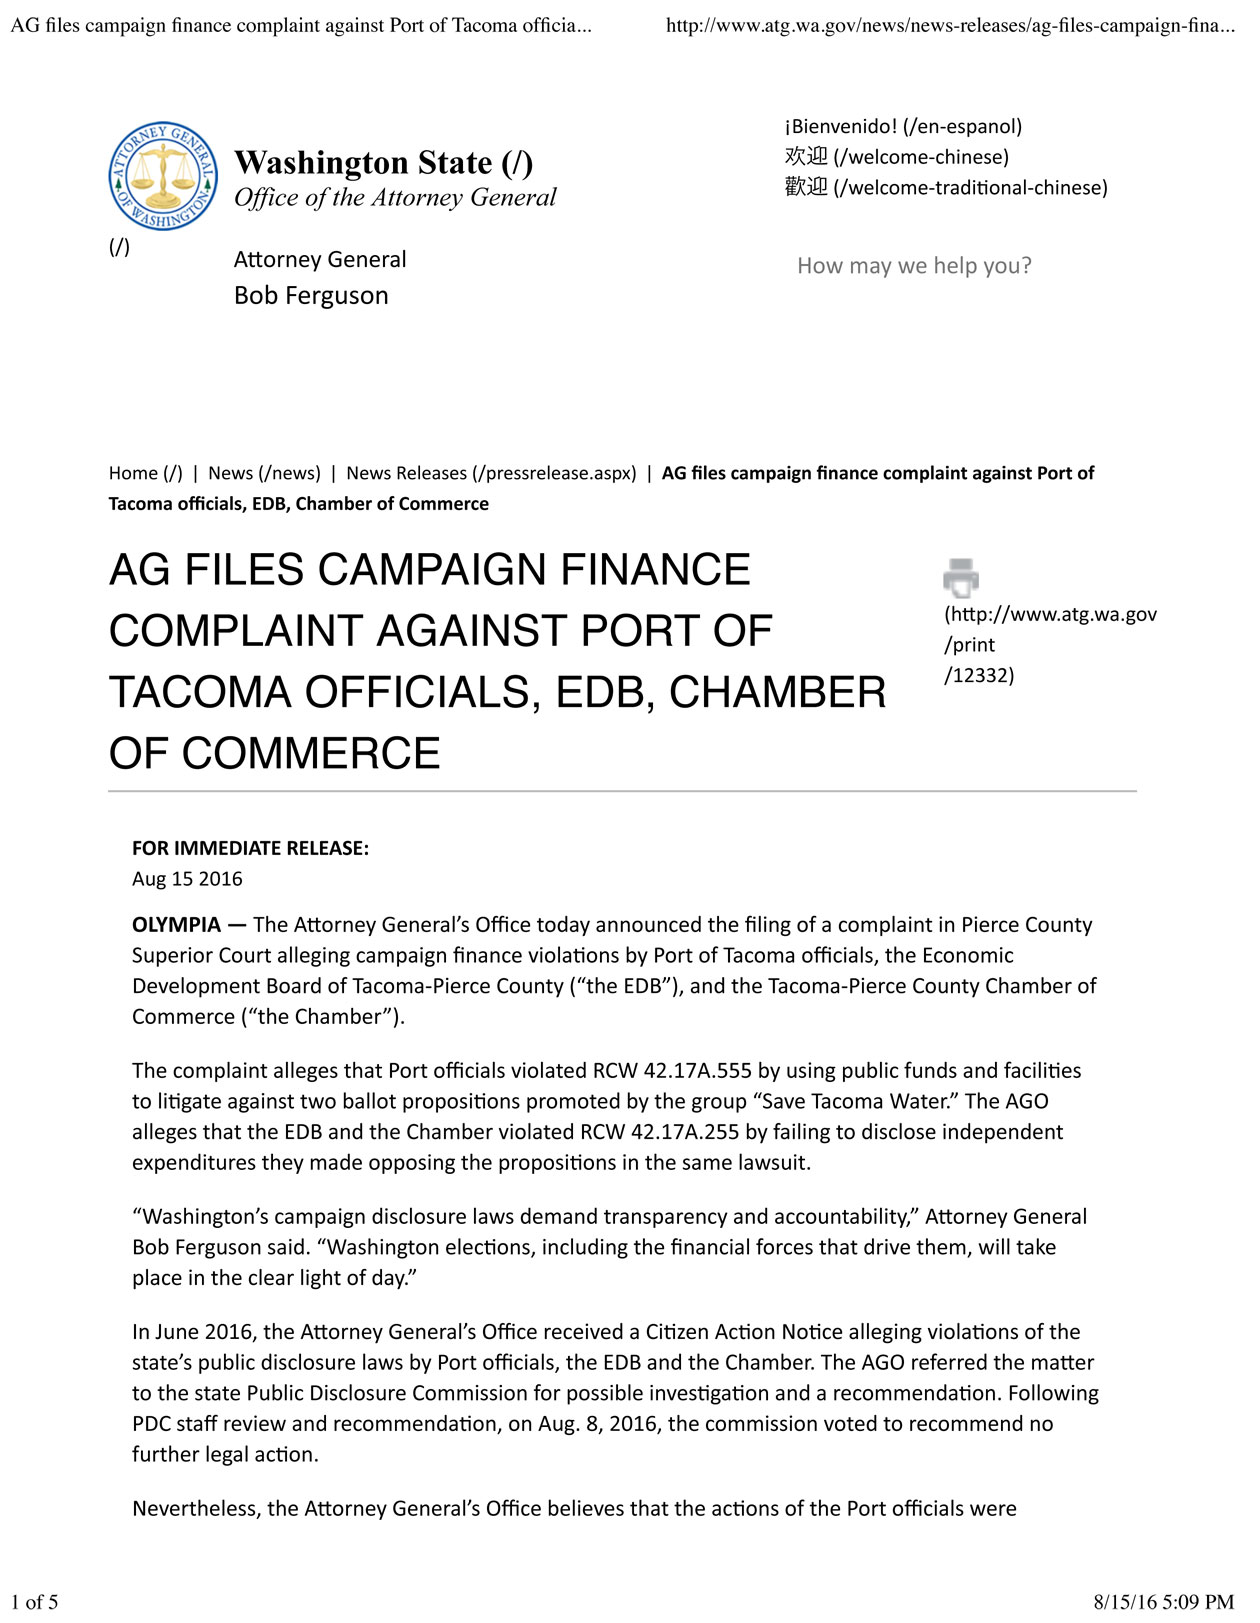 AG-files-campaign-finance-complaint-against-Port-of-Tacoma-officials,-EDB,-Chamber-of-Commerce-_-Washington-State-WS